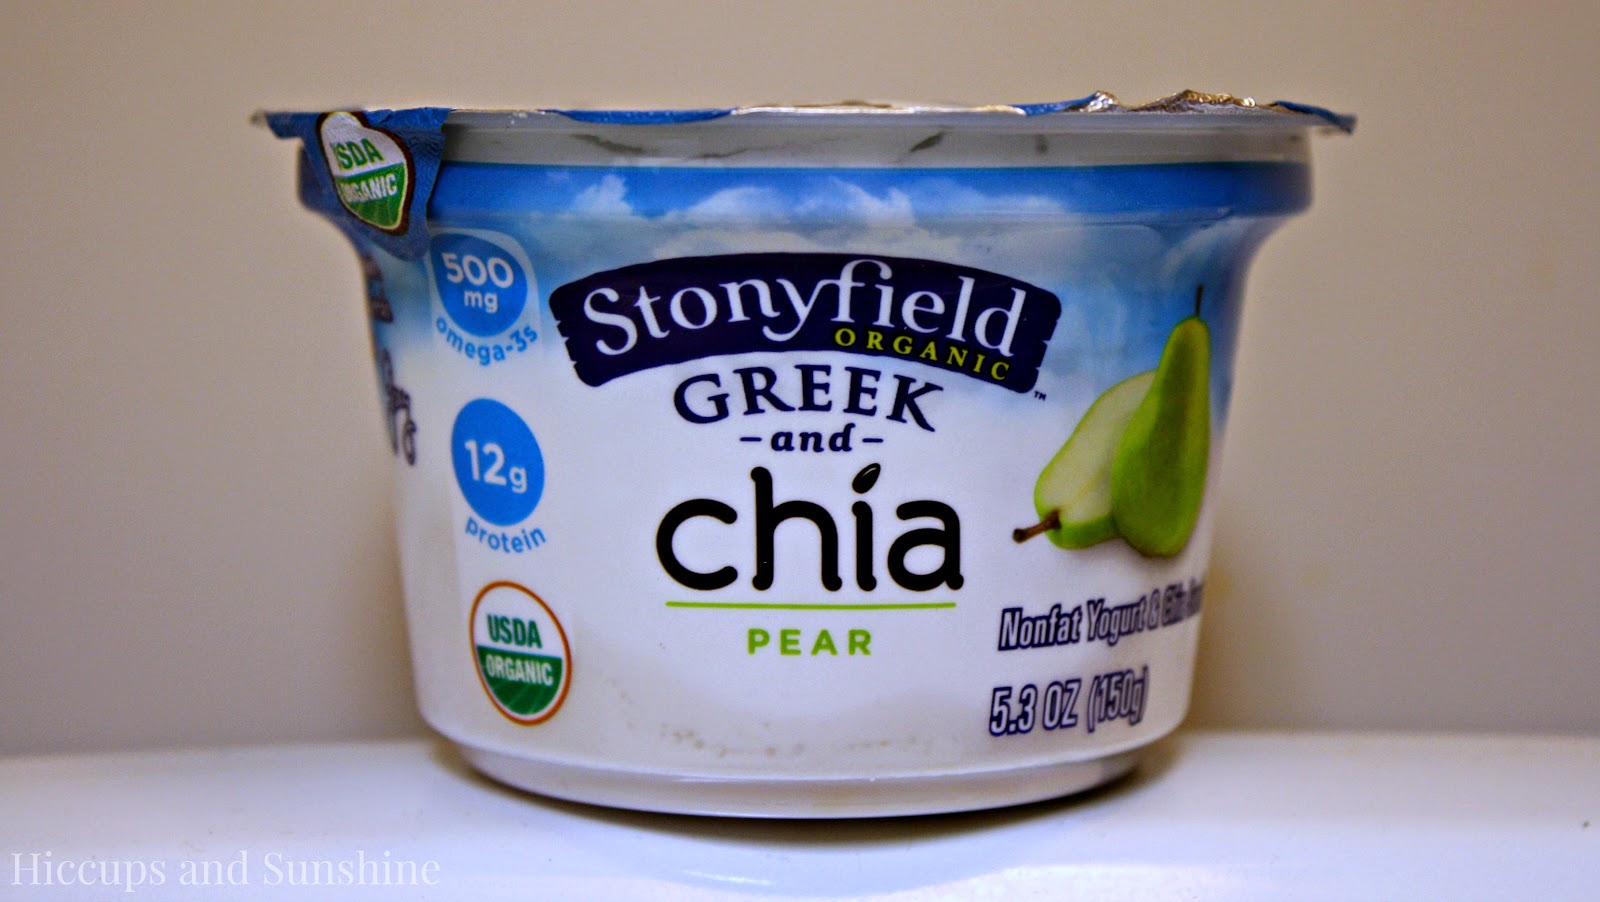 Stonyfield Greek and Chia